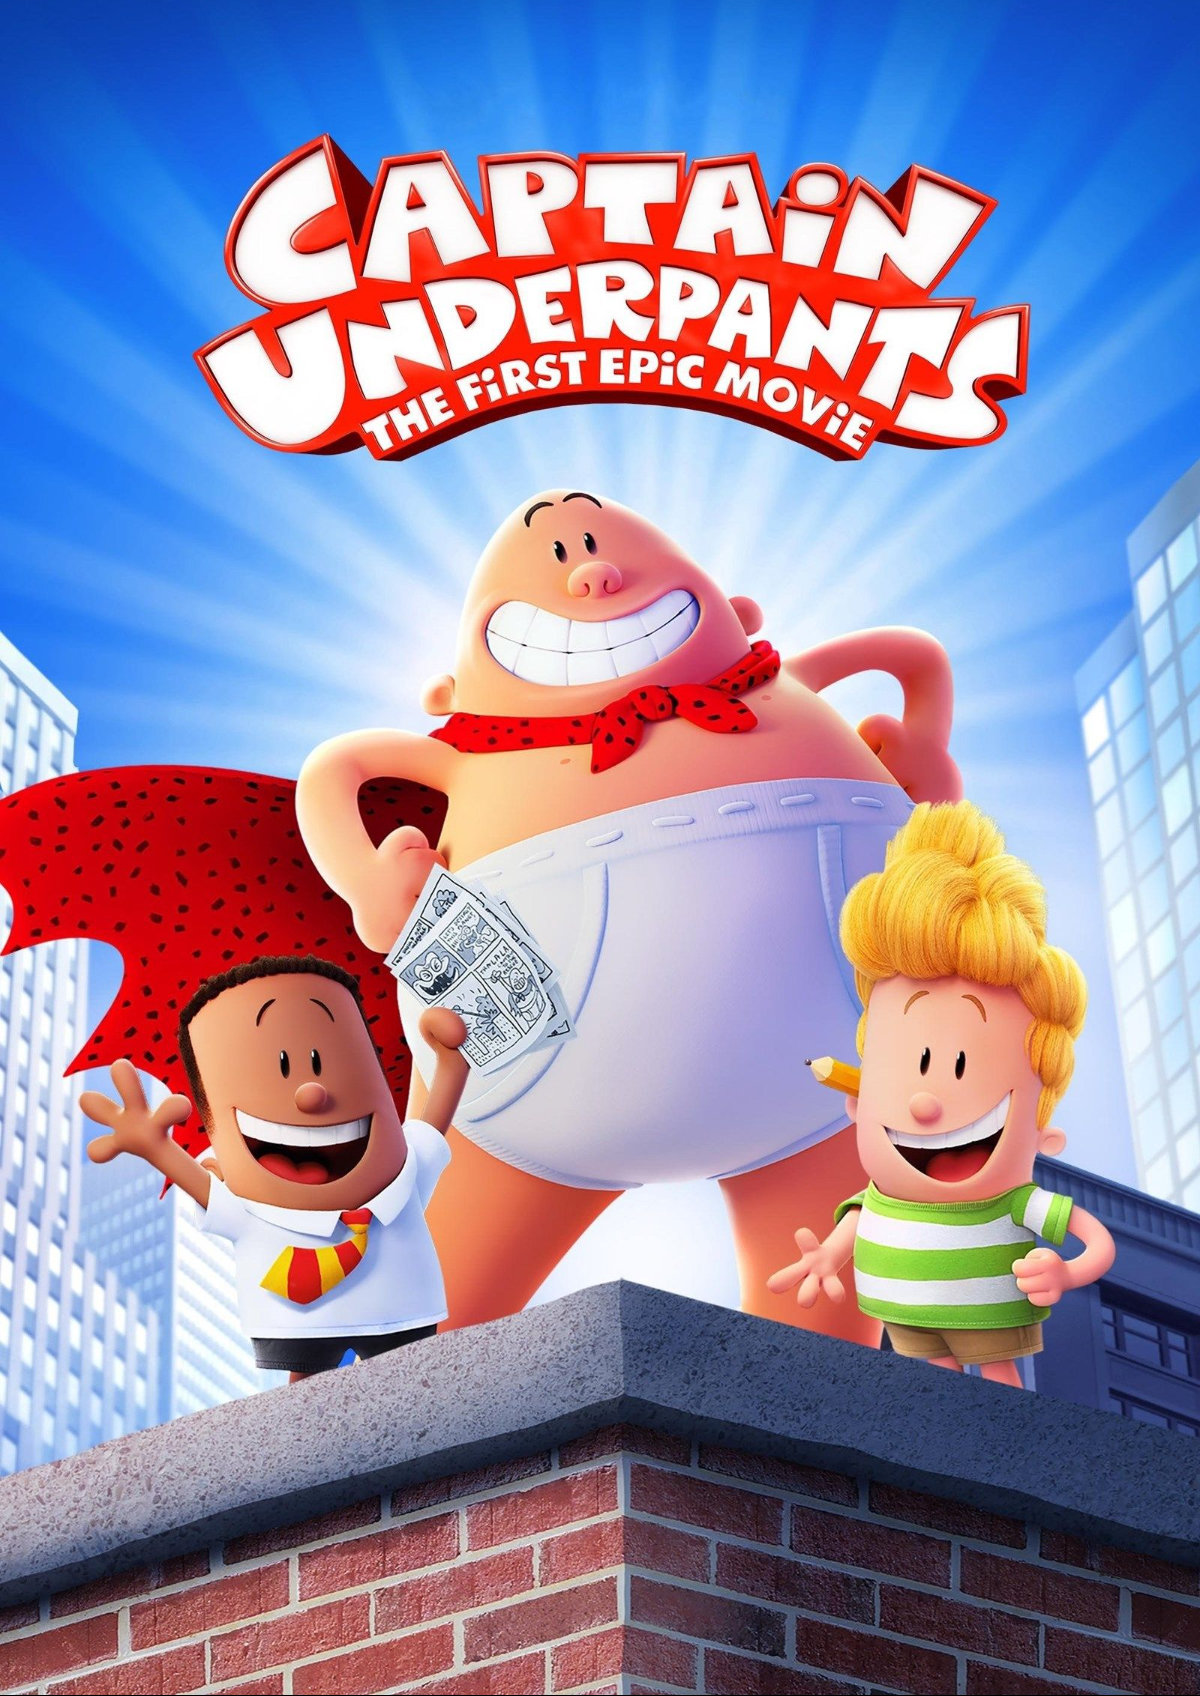 'Captain Underpants' movie poster